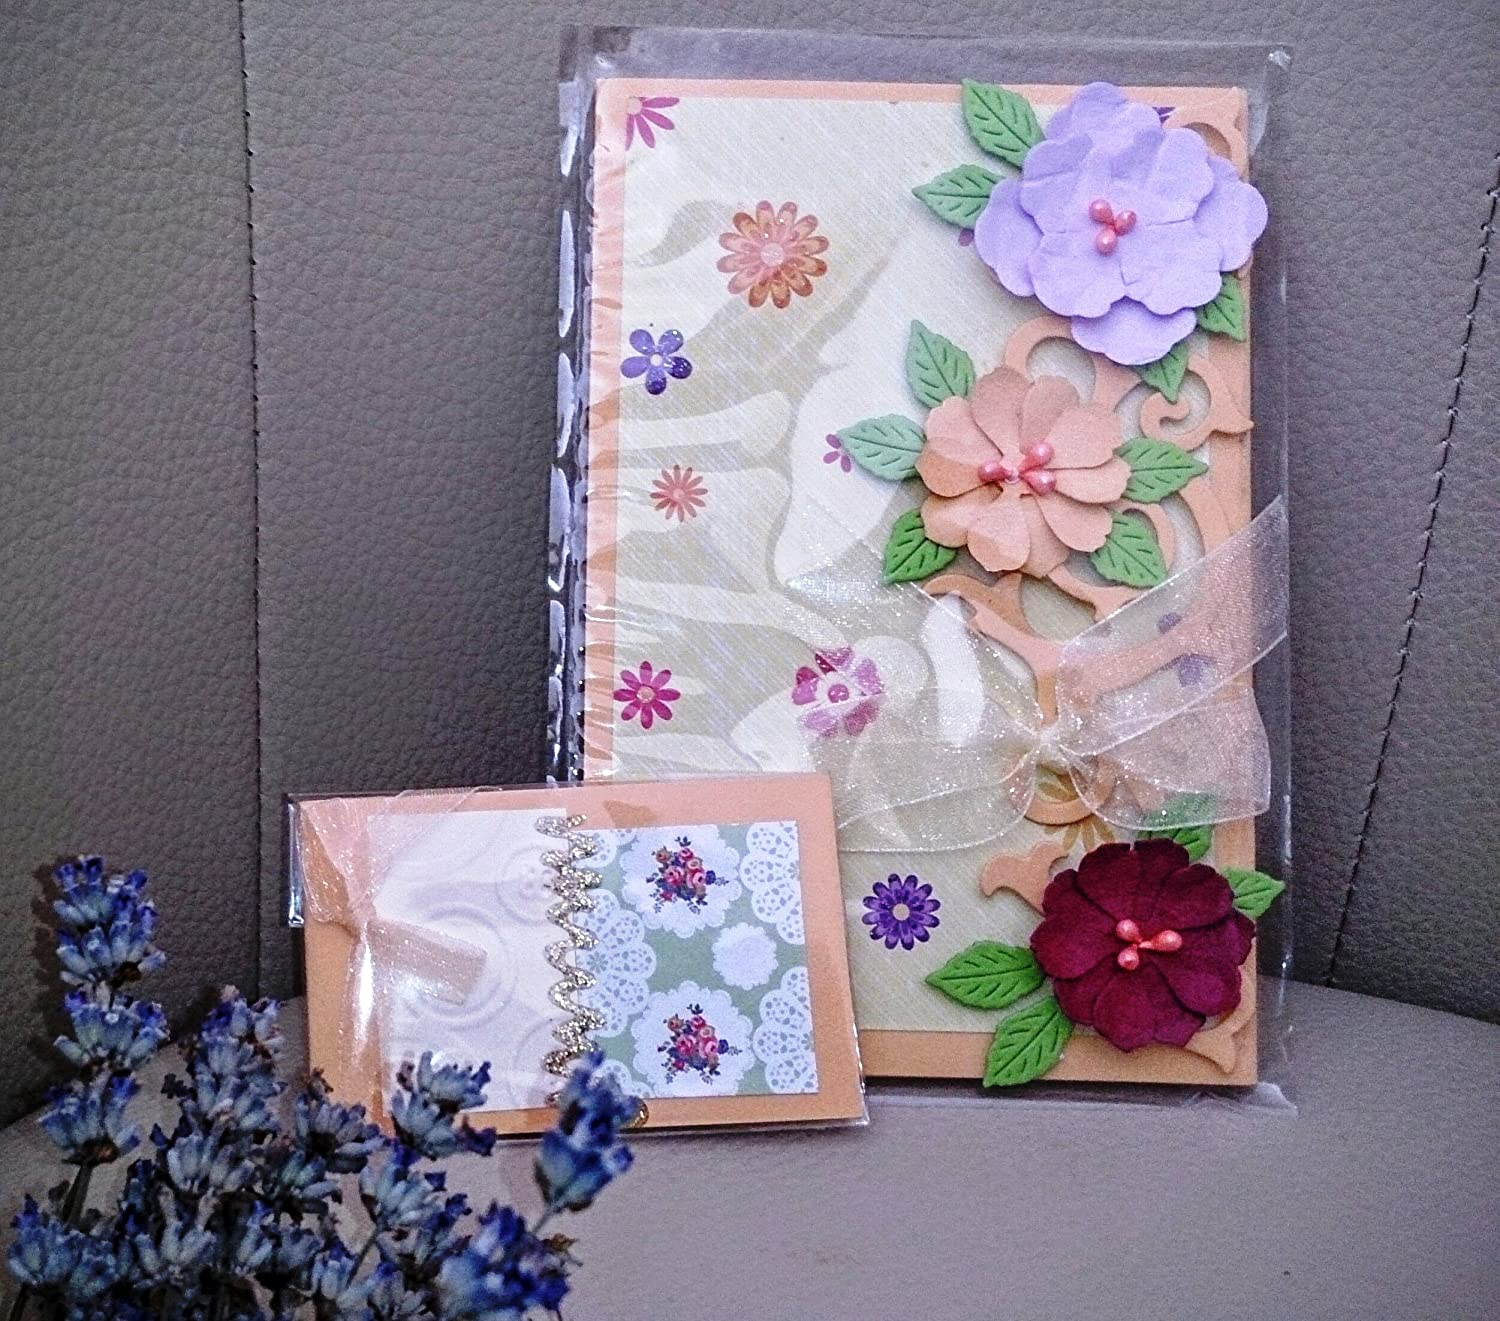 A Set of Two Greeting Cards and Two Small Bouquet Cards Naturel Design Greeting Beauties Collection